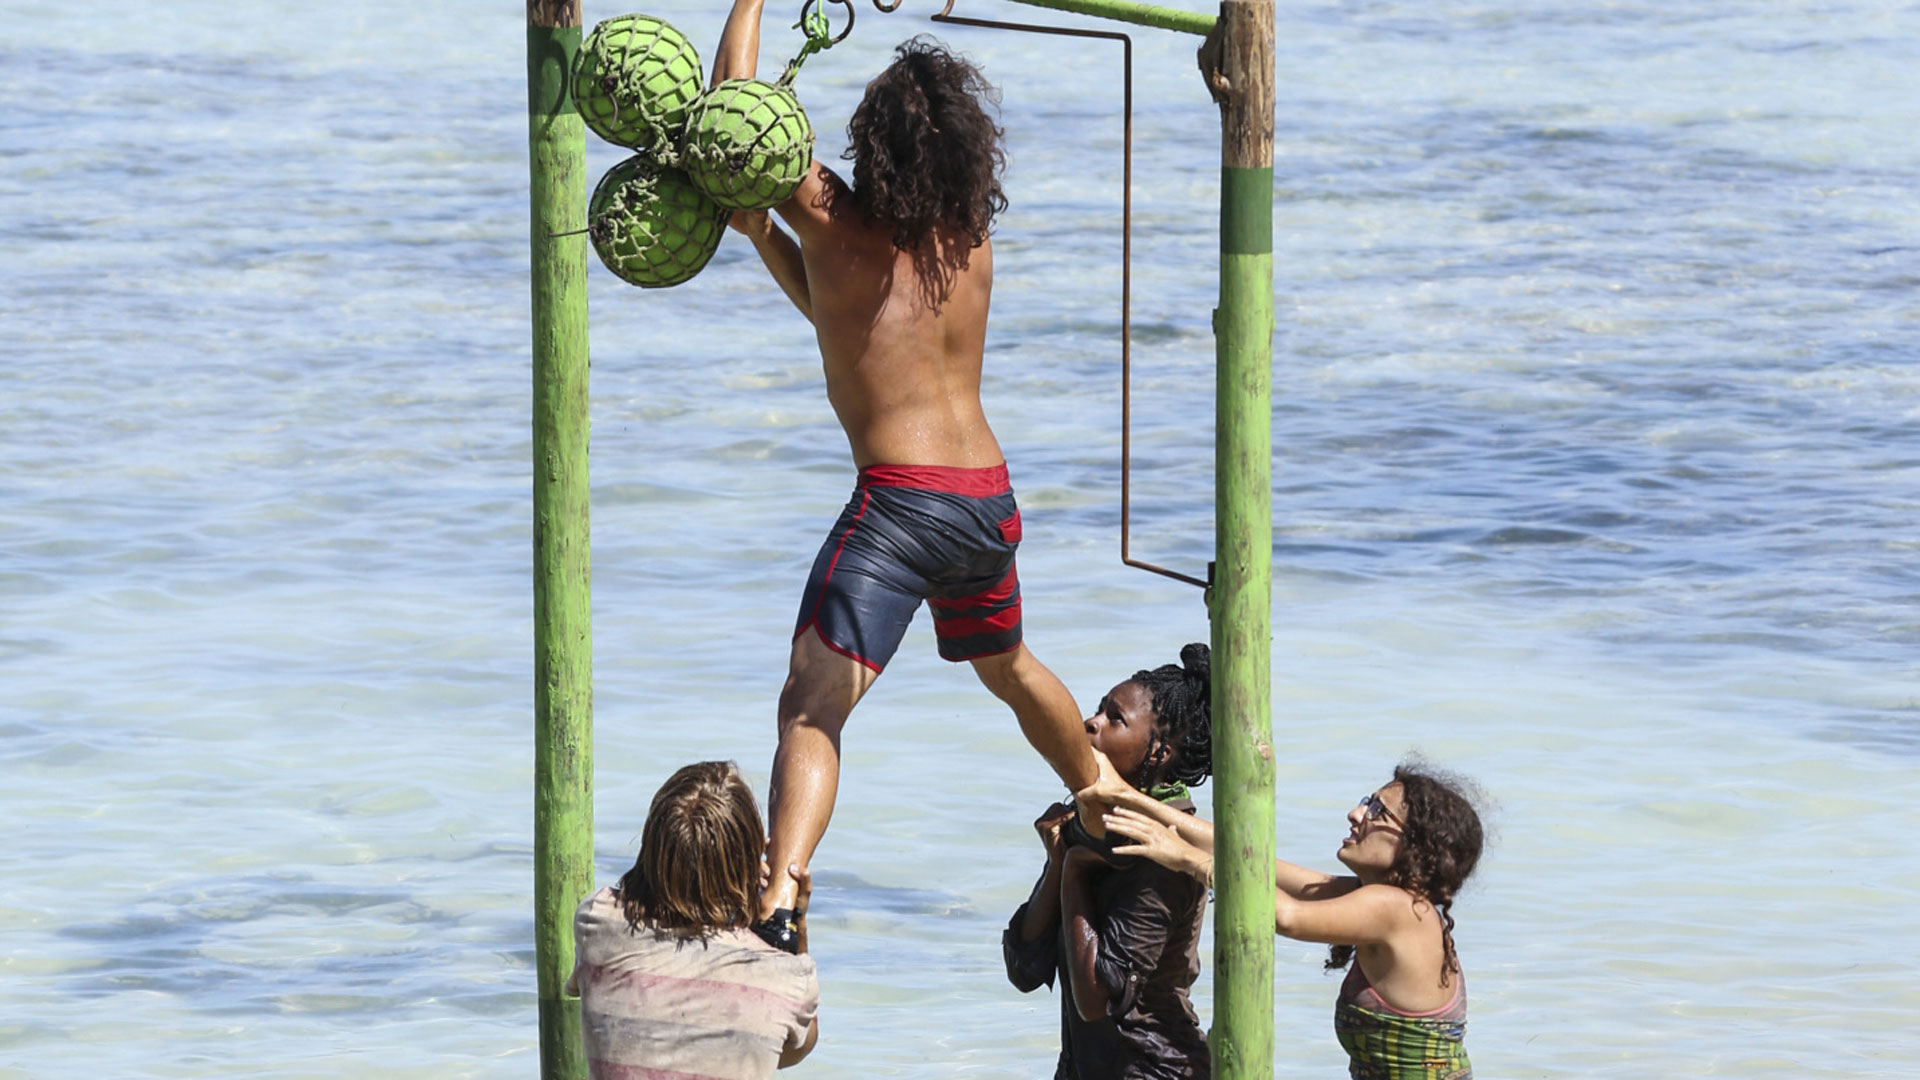 Jay's tribe mates hold him up as he takes charge of the challenge.